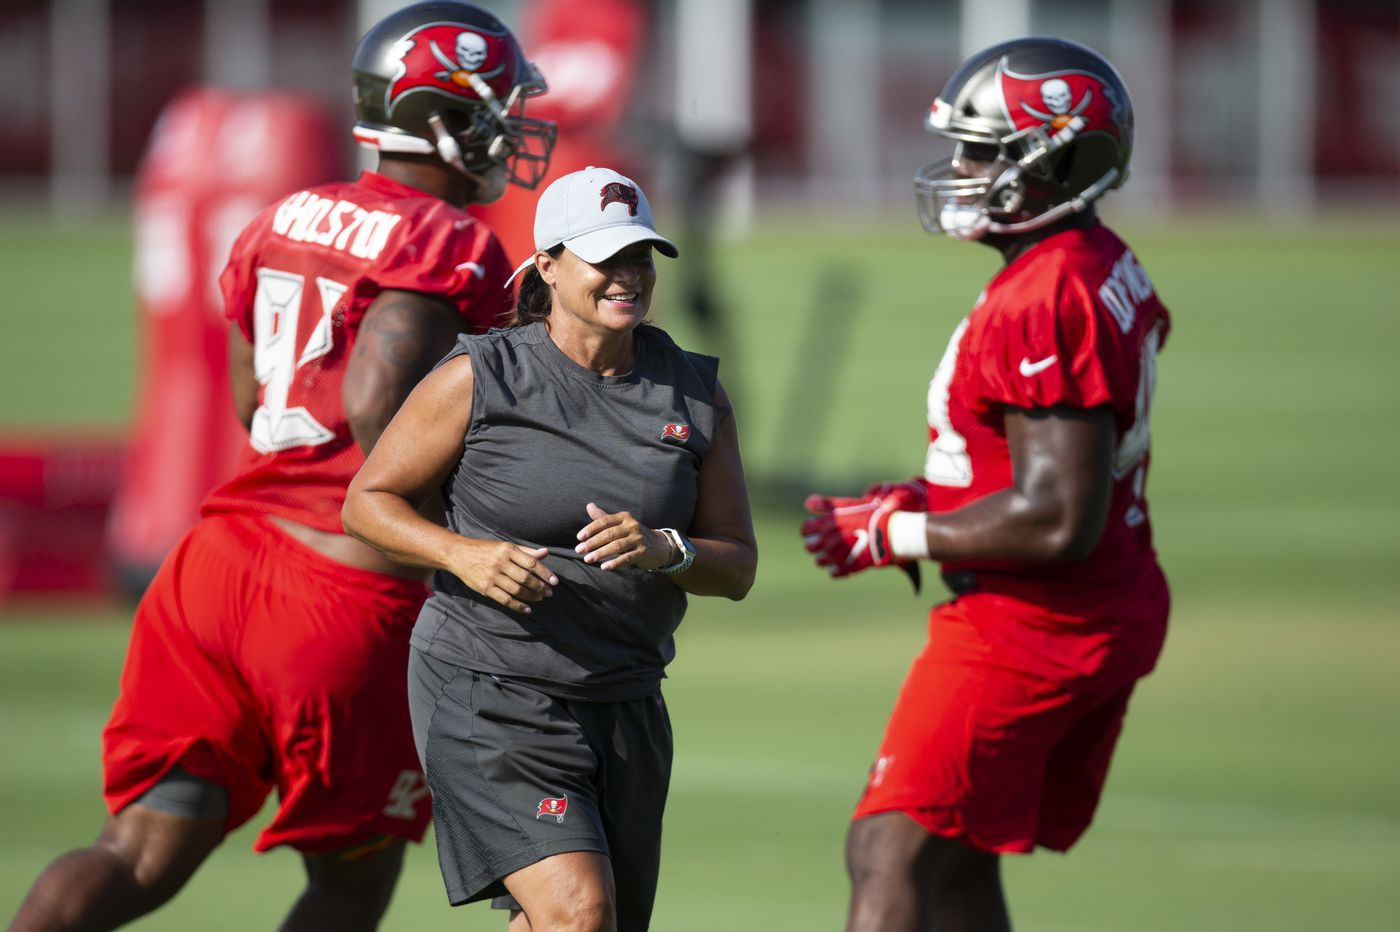 9f5b260ad3a8e Philly-born Temple product Lori Locust makes history as a female NFL coach  even if that ...